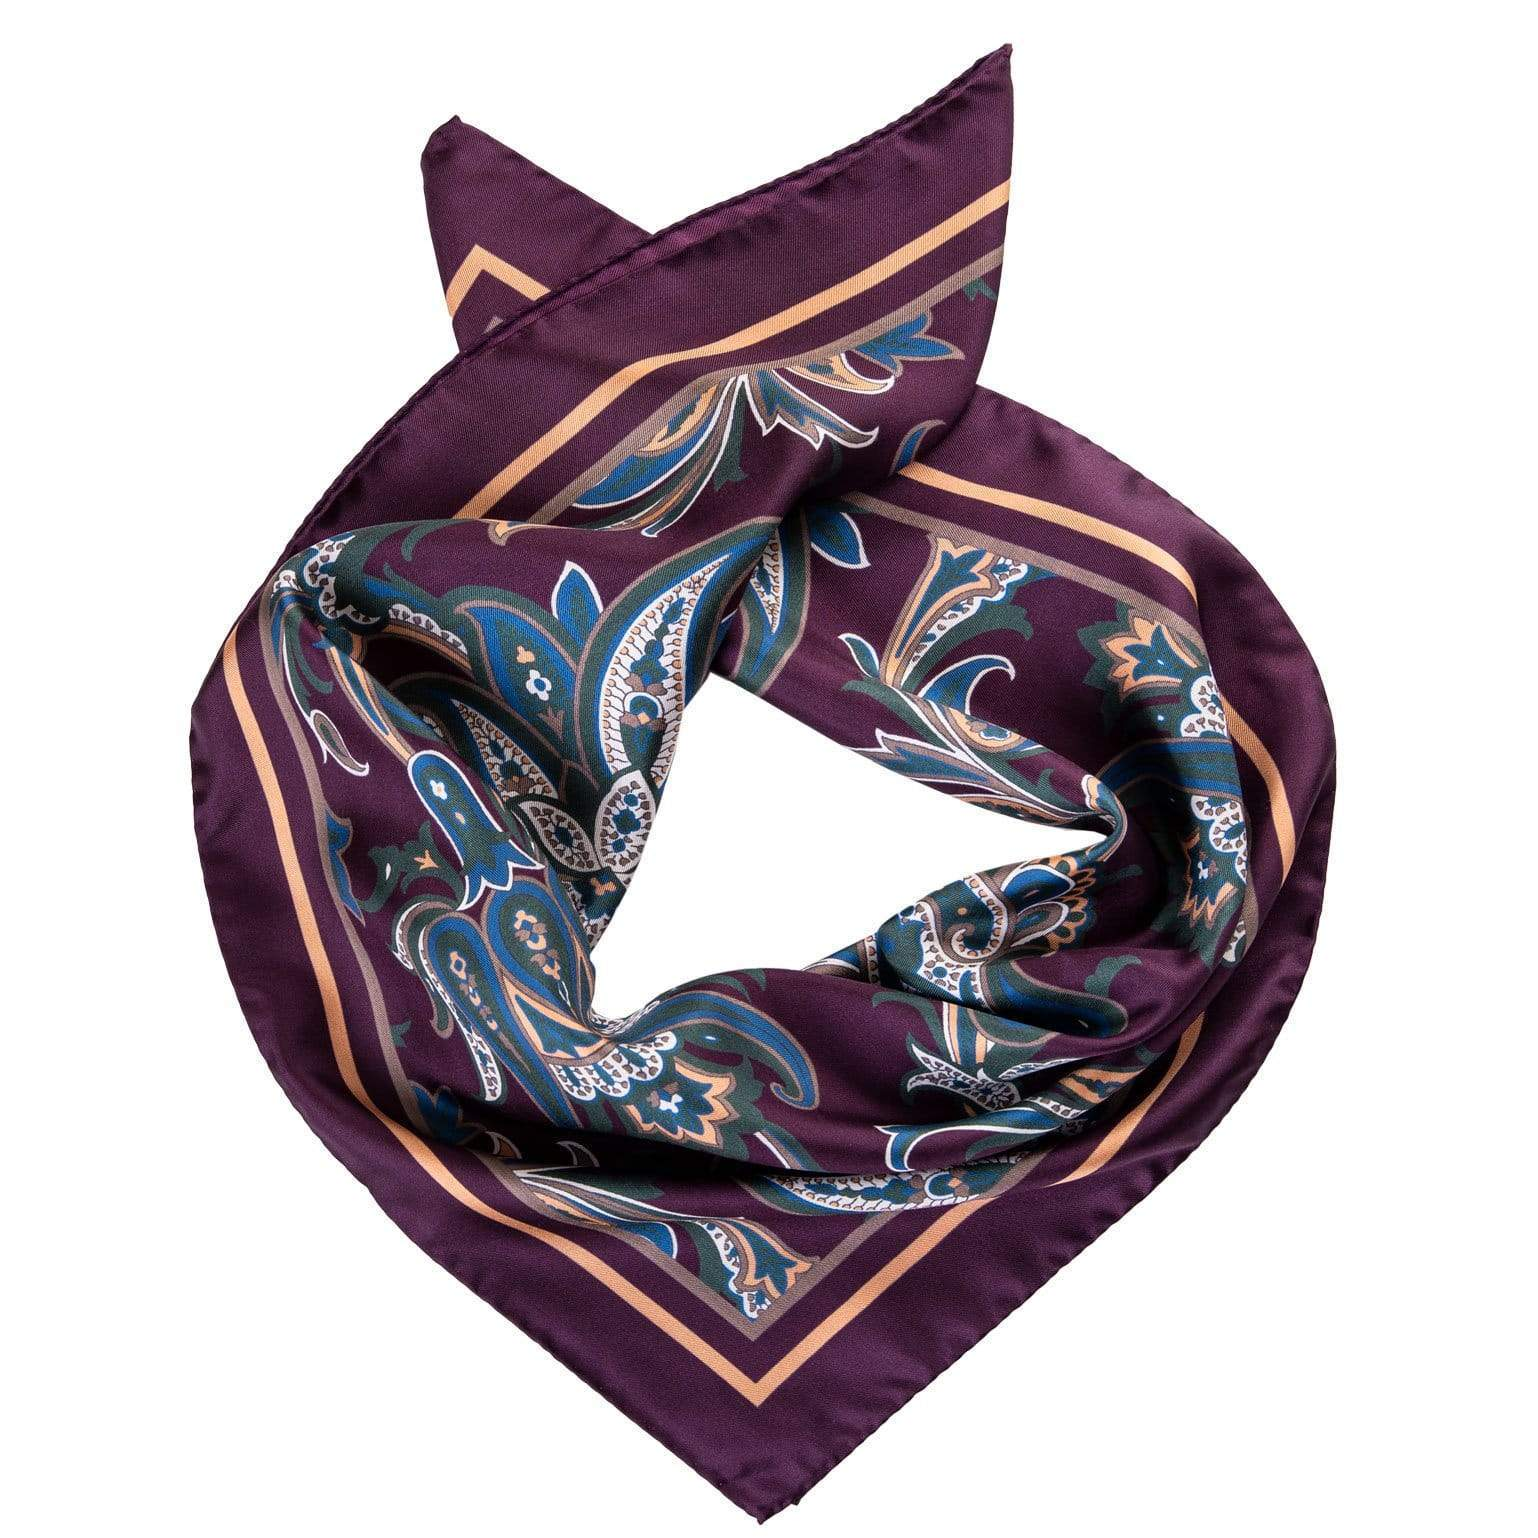 Mens Silk Neckerchief - Plum Paisley - Made in Italy